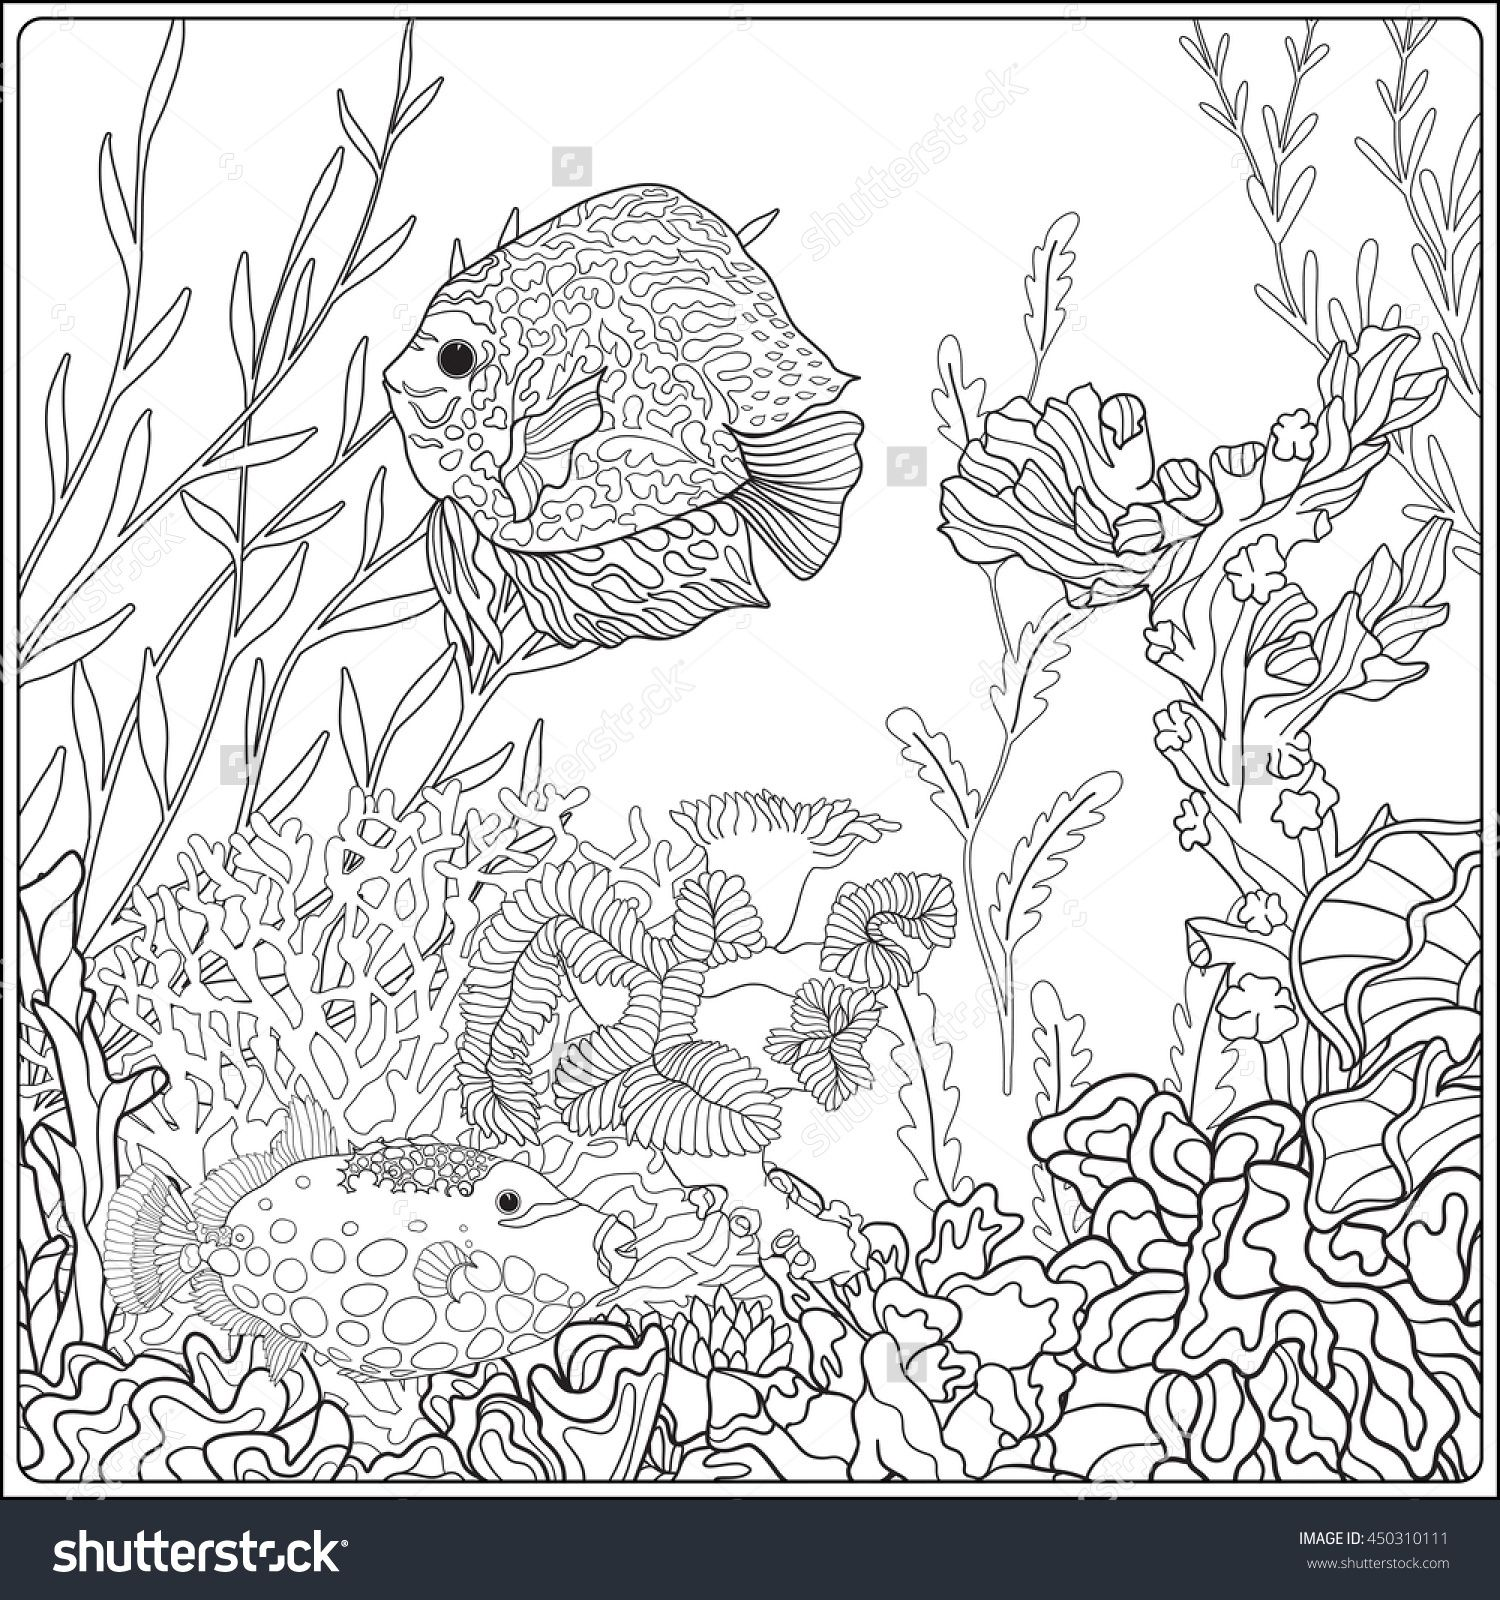 coral reef fish coloring pages - photo#20